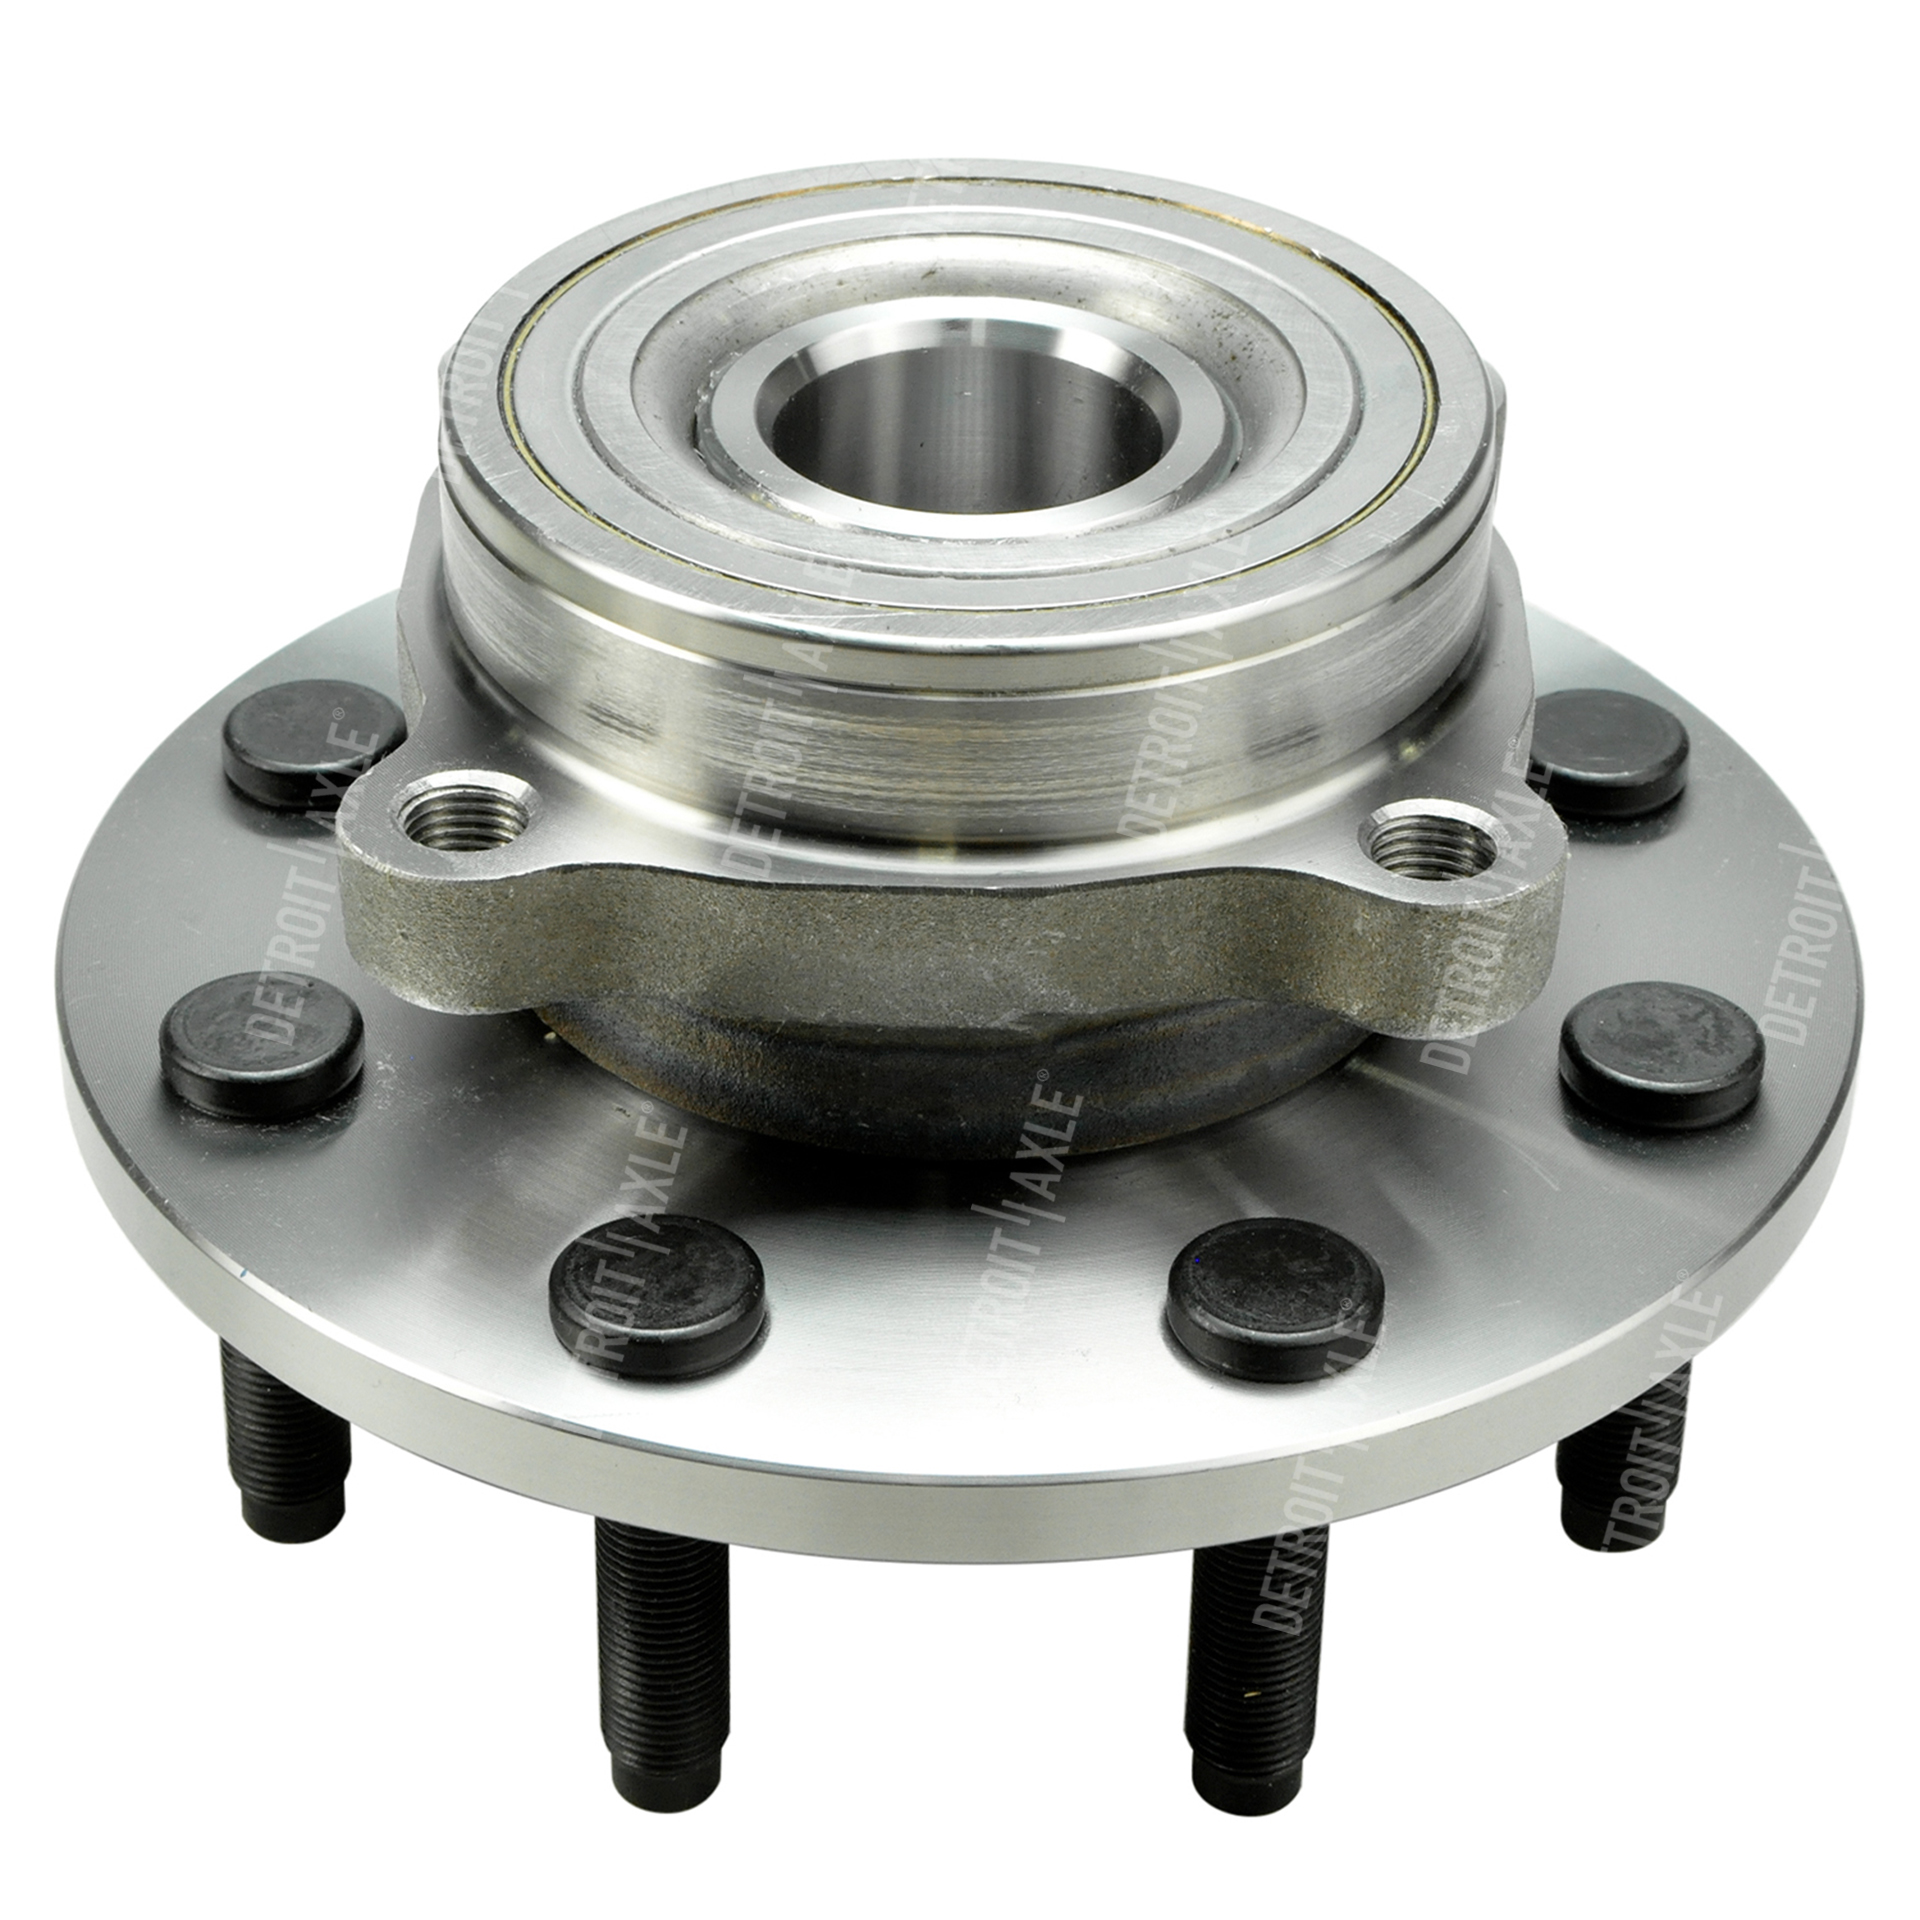 4x4 Front Axle Assembly : Front wheel hub and bearing assembly driver or passenger